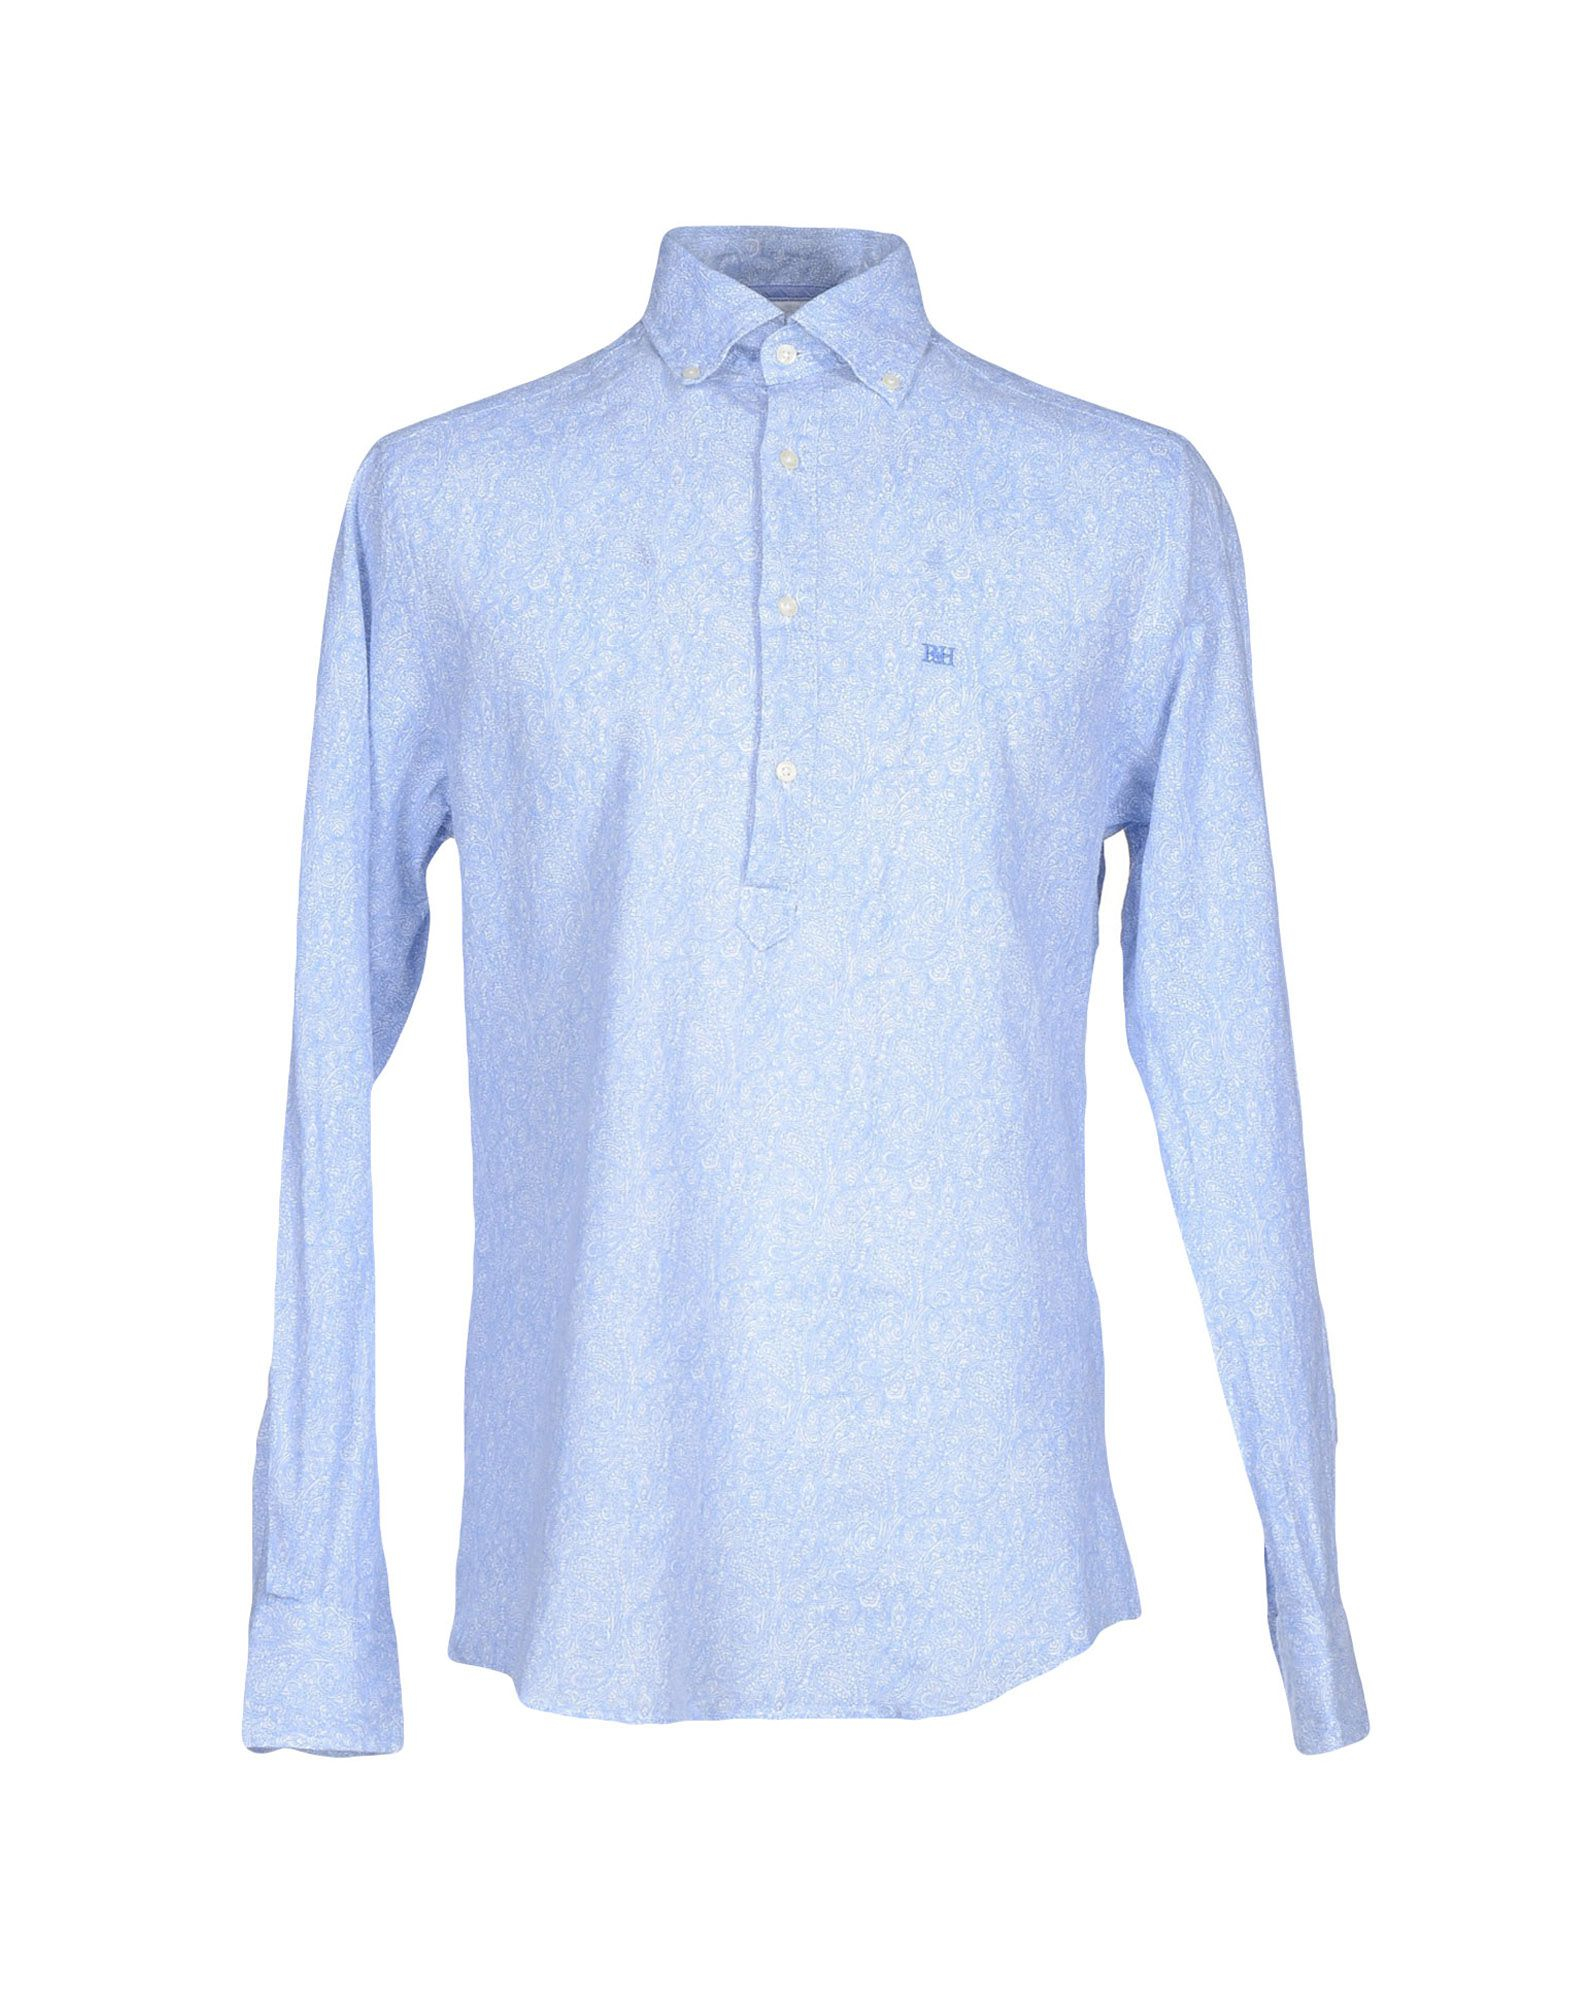 Mens Casual Shirt Pedro del Hierro For Sale Very Cheap Really Sale Online YnuT0